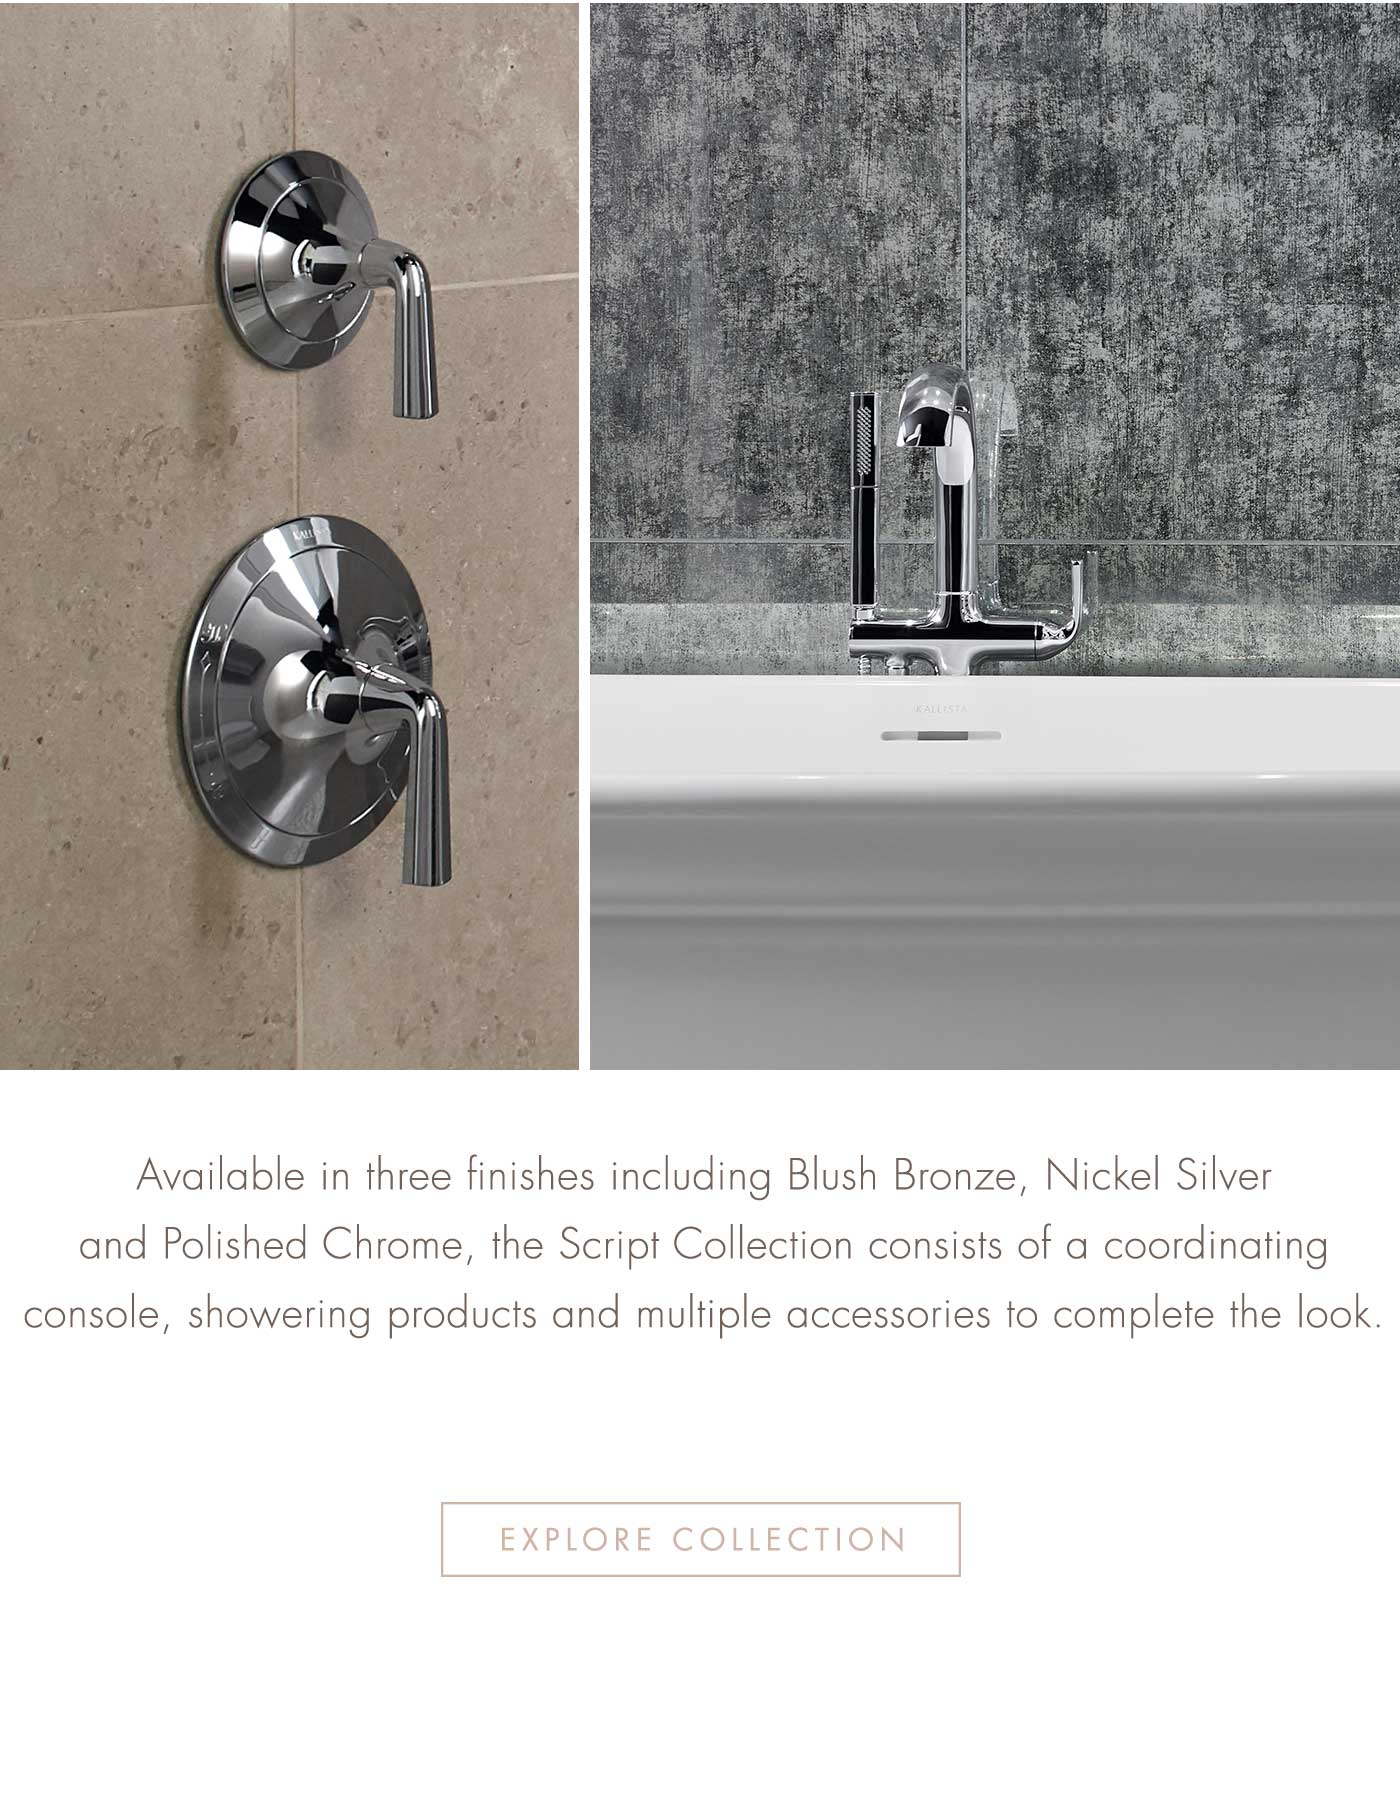 Available in three finishes including Blush Bronze, Nickel Silver and Chrome, the Script Collection consists of a coordinating console, showering products and multiple accessories to complete the look.   EXPLORE COLLECTION